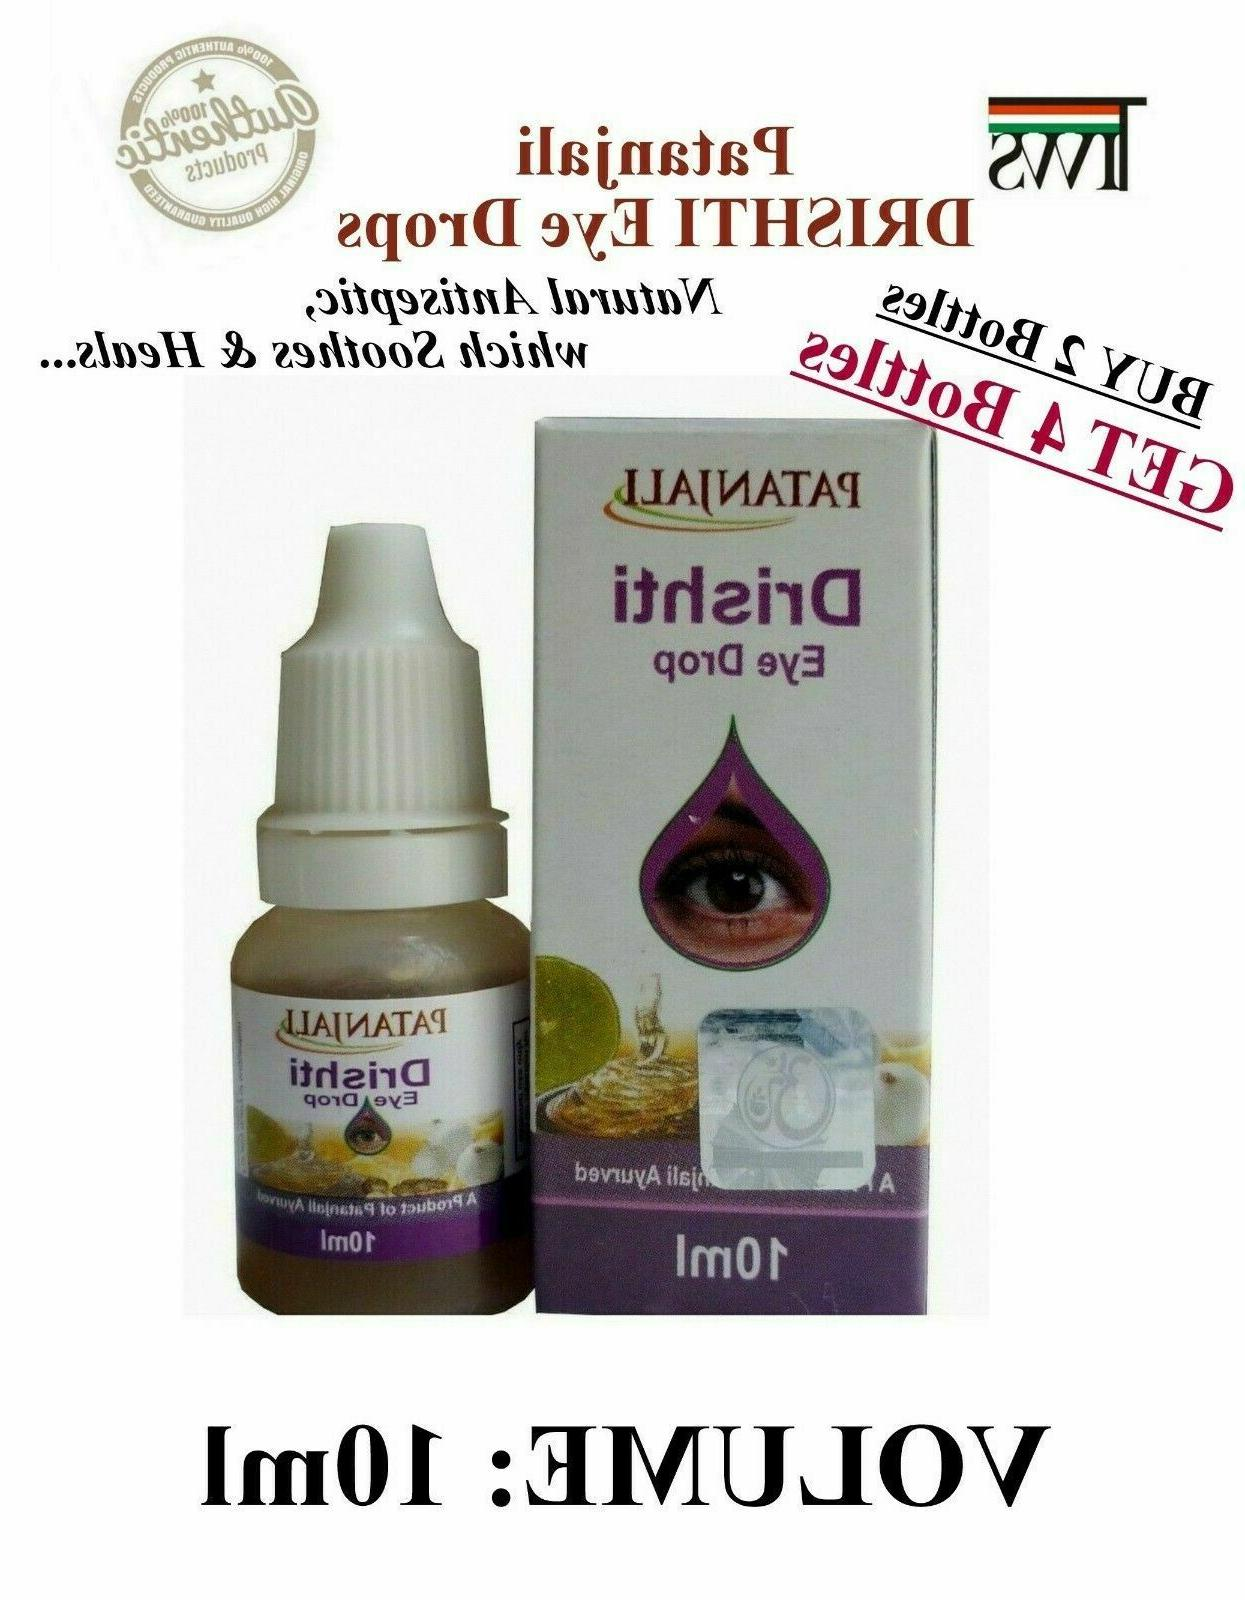 drishti eye drops herbal natural ayurvedic 10ml